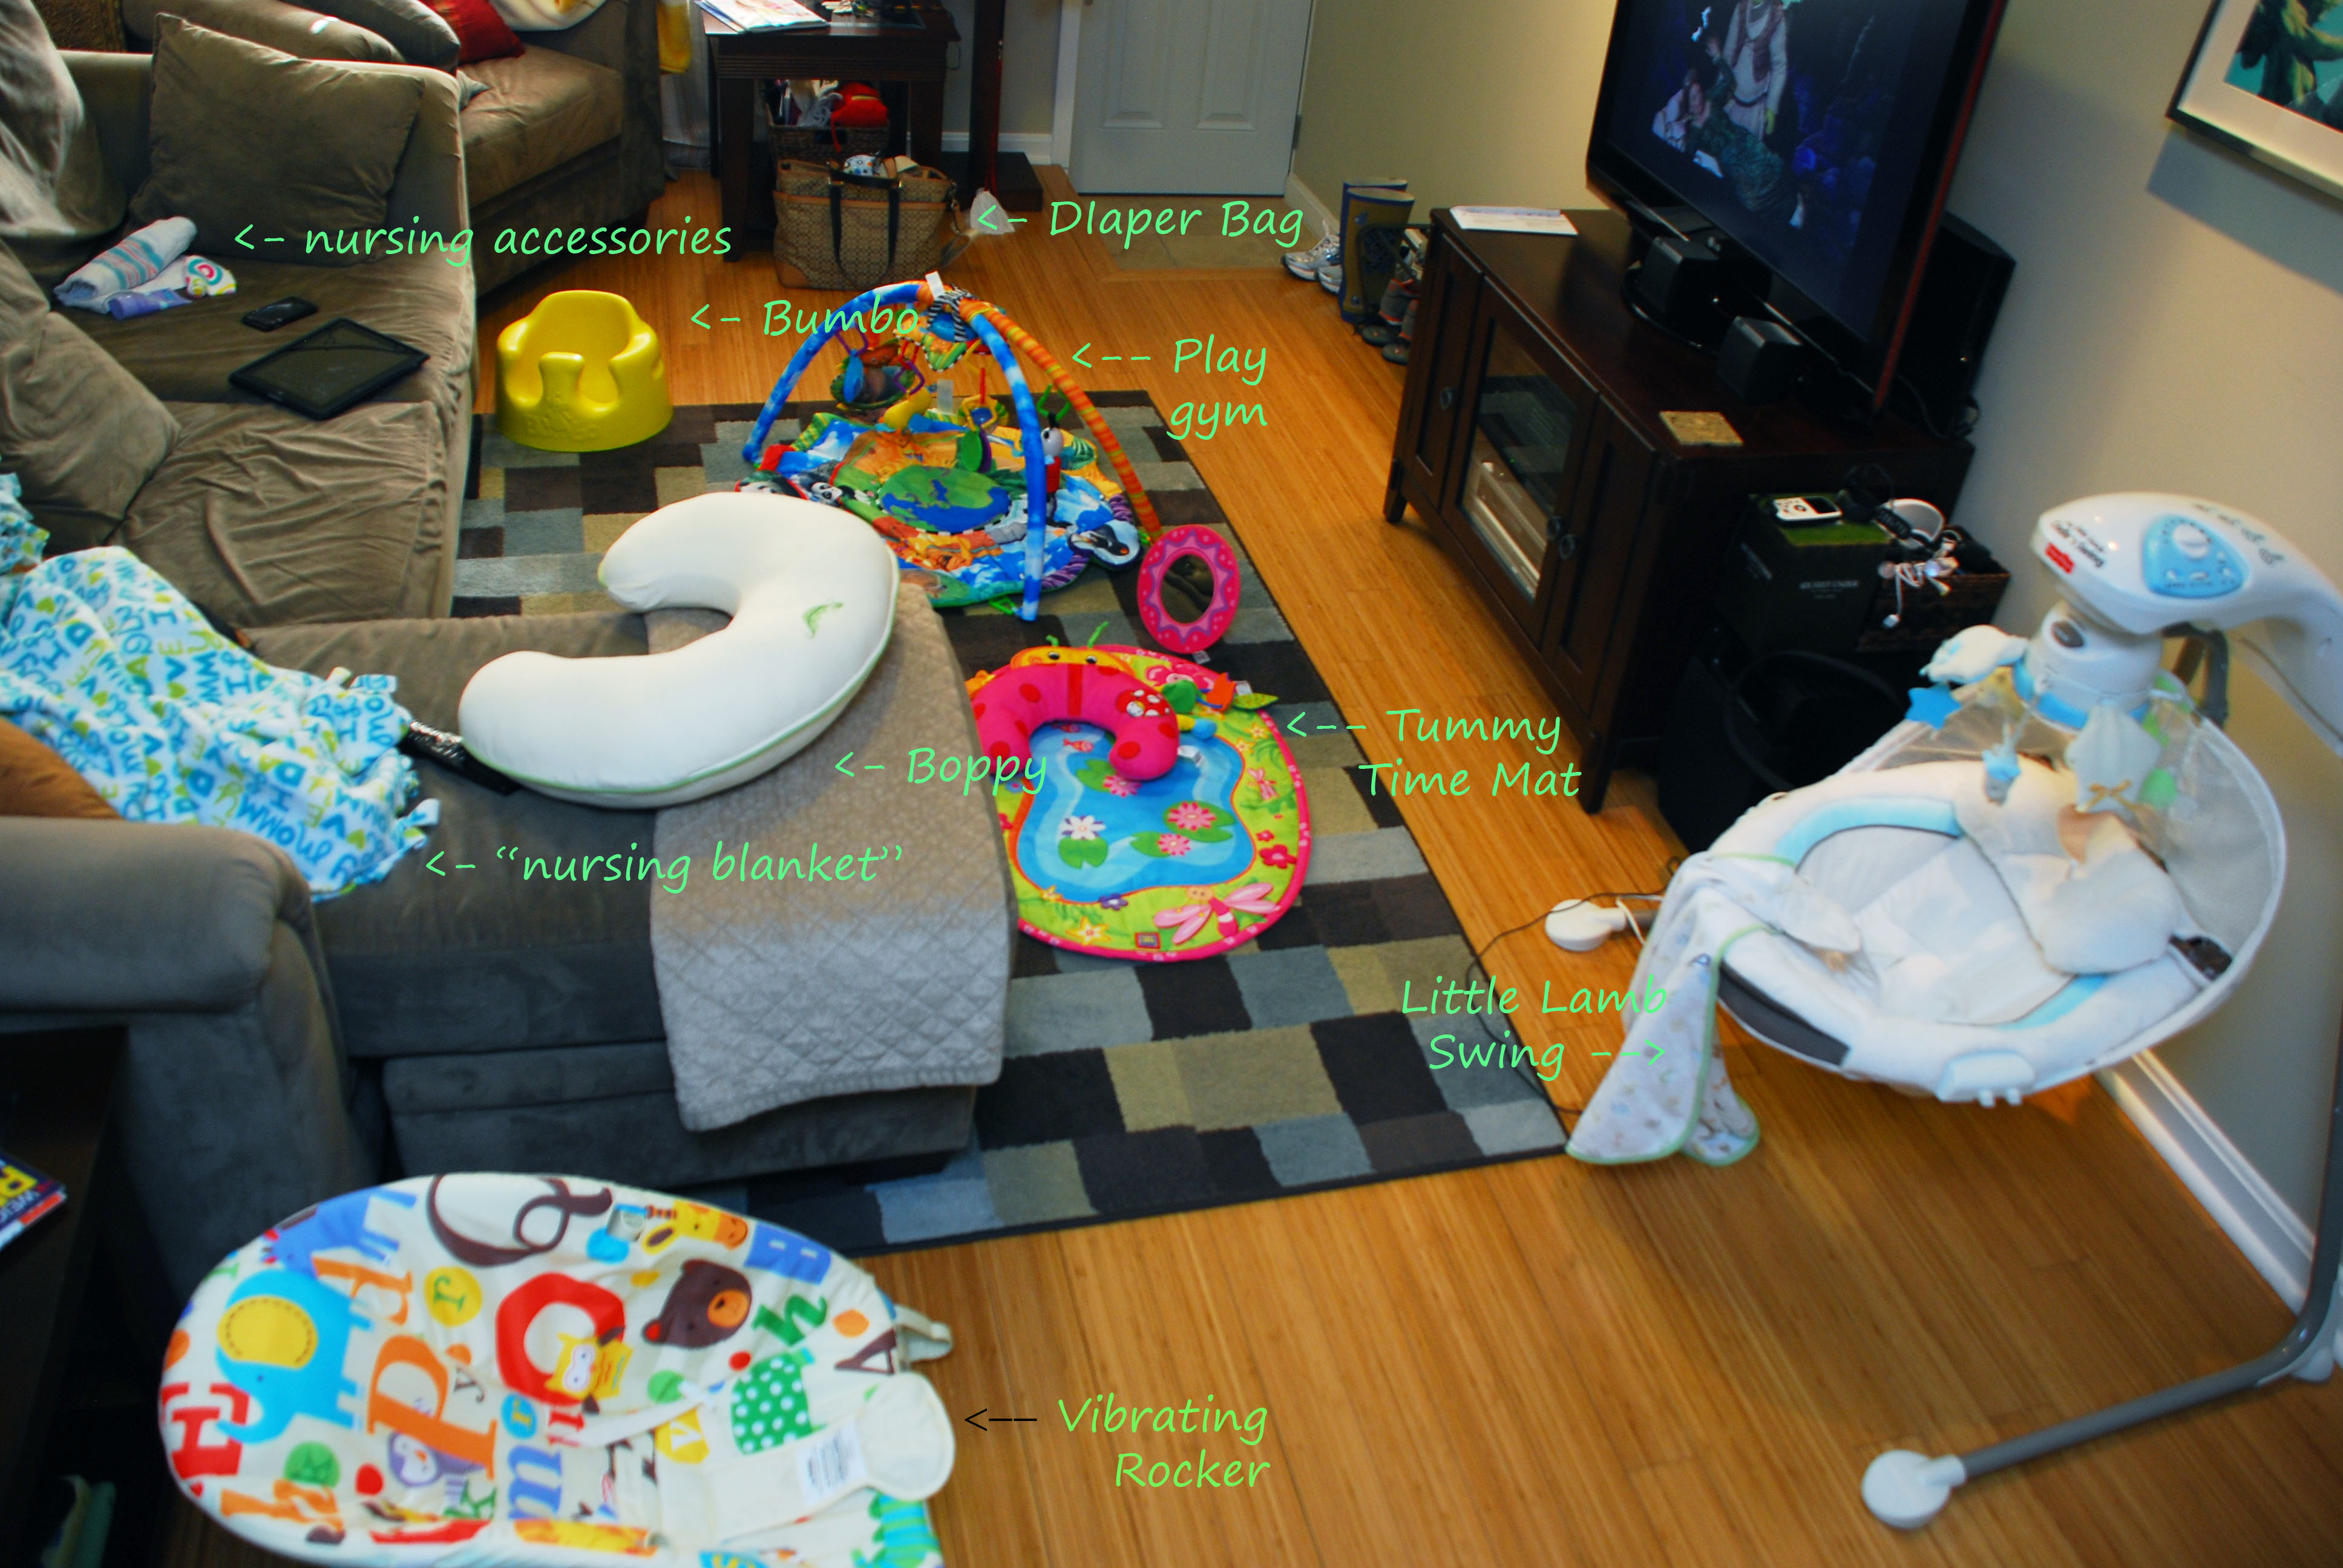 A Photo Of My Living Room Filled With Baby Junk